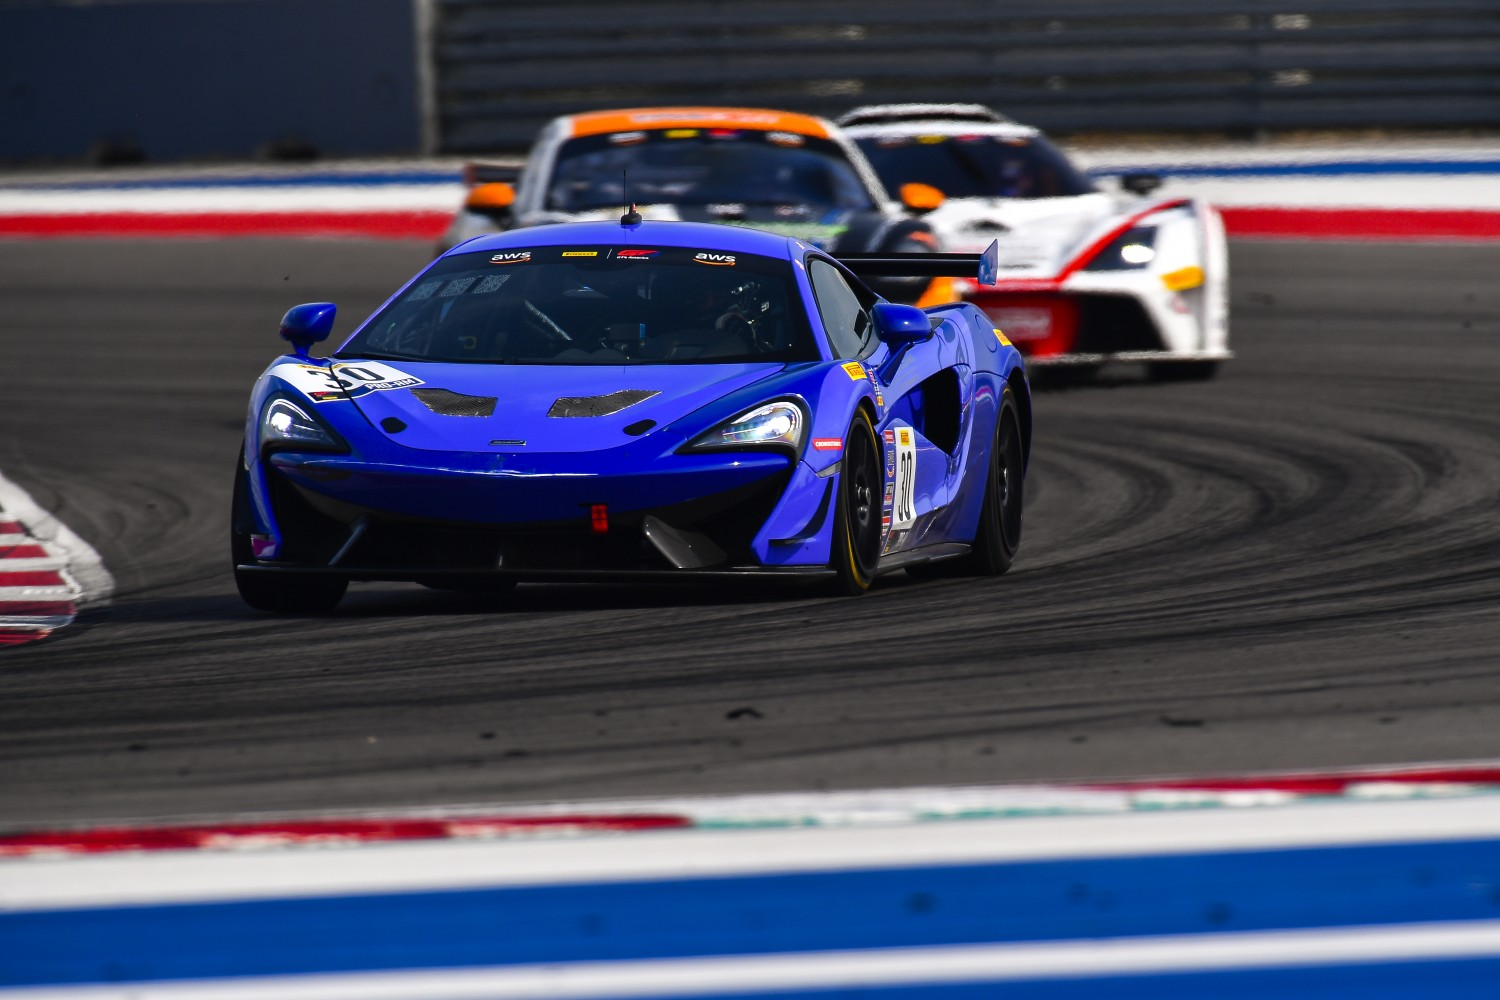 #30 McLaren 570s GT4 of Erin Vogel and Michael Cooper,  Flying Lizard Motorsports, GT4 SprintX Pro-Am,    2020 SRO Motorsports Group - COTA2, Austin TX Photographer: Gavin Baker/SRO | © 2020 Gavin Baker